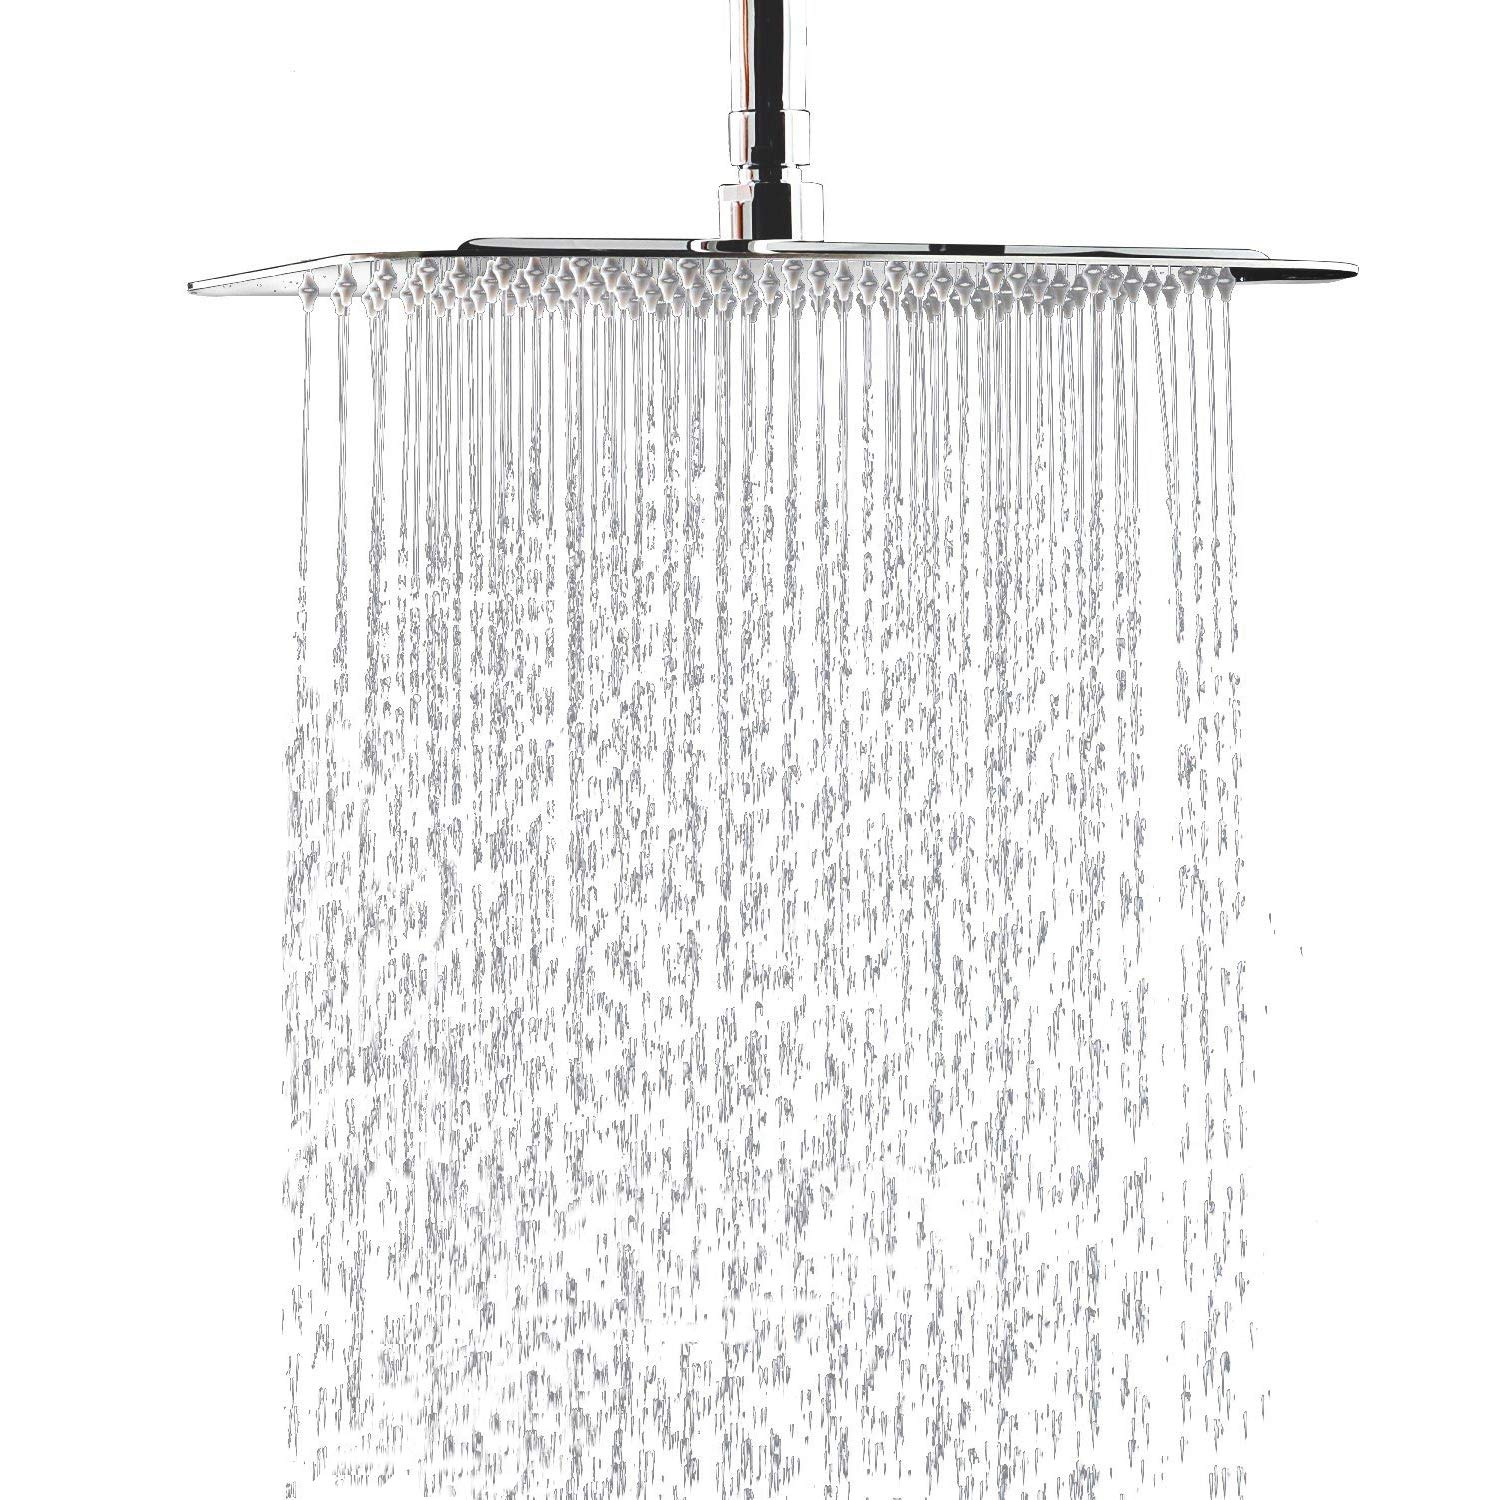 12'' Square Rain Showerhead with 11'' Adjustable Extension Arm, Large Stainless Steel High Pressure Shower Head,Ultra Thin Rainfall Bath Shower with Silicone Nozzle Easy to Clean and Install MeSun